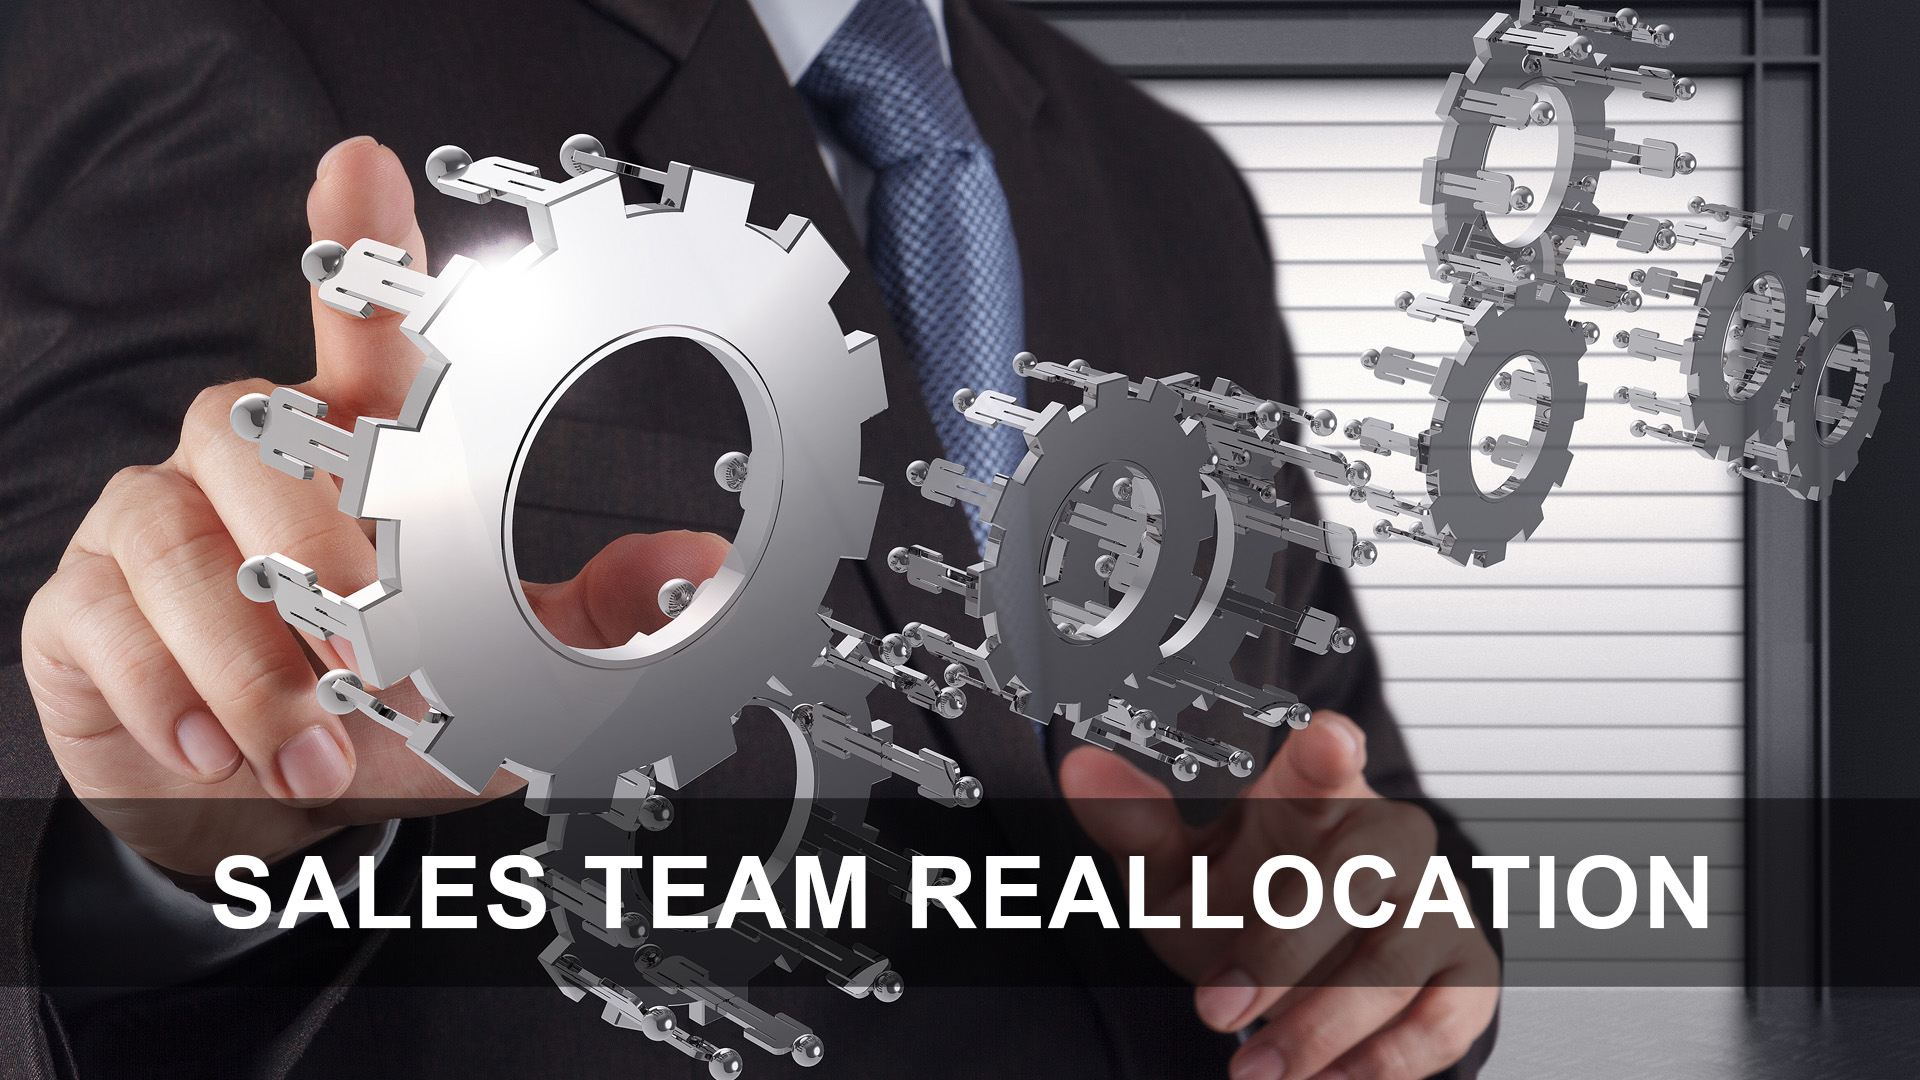 Sales Team Reallocation Icon.jpg